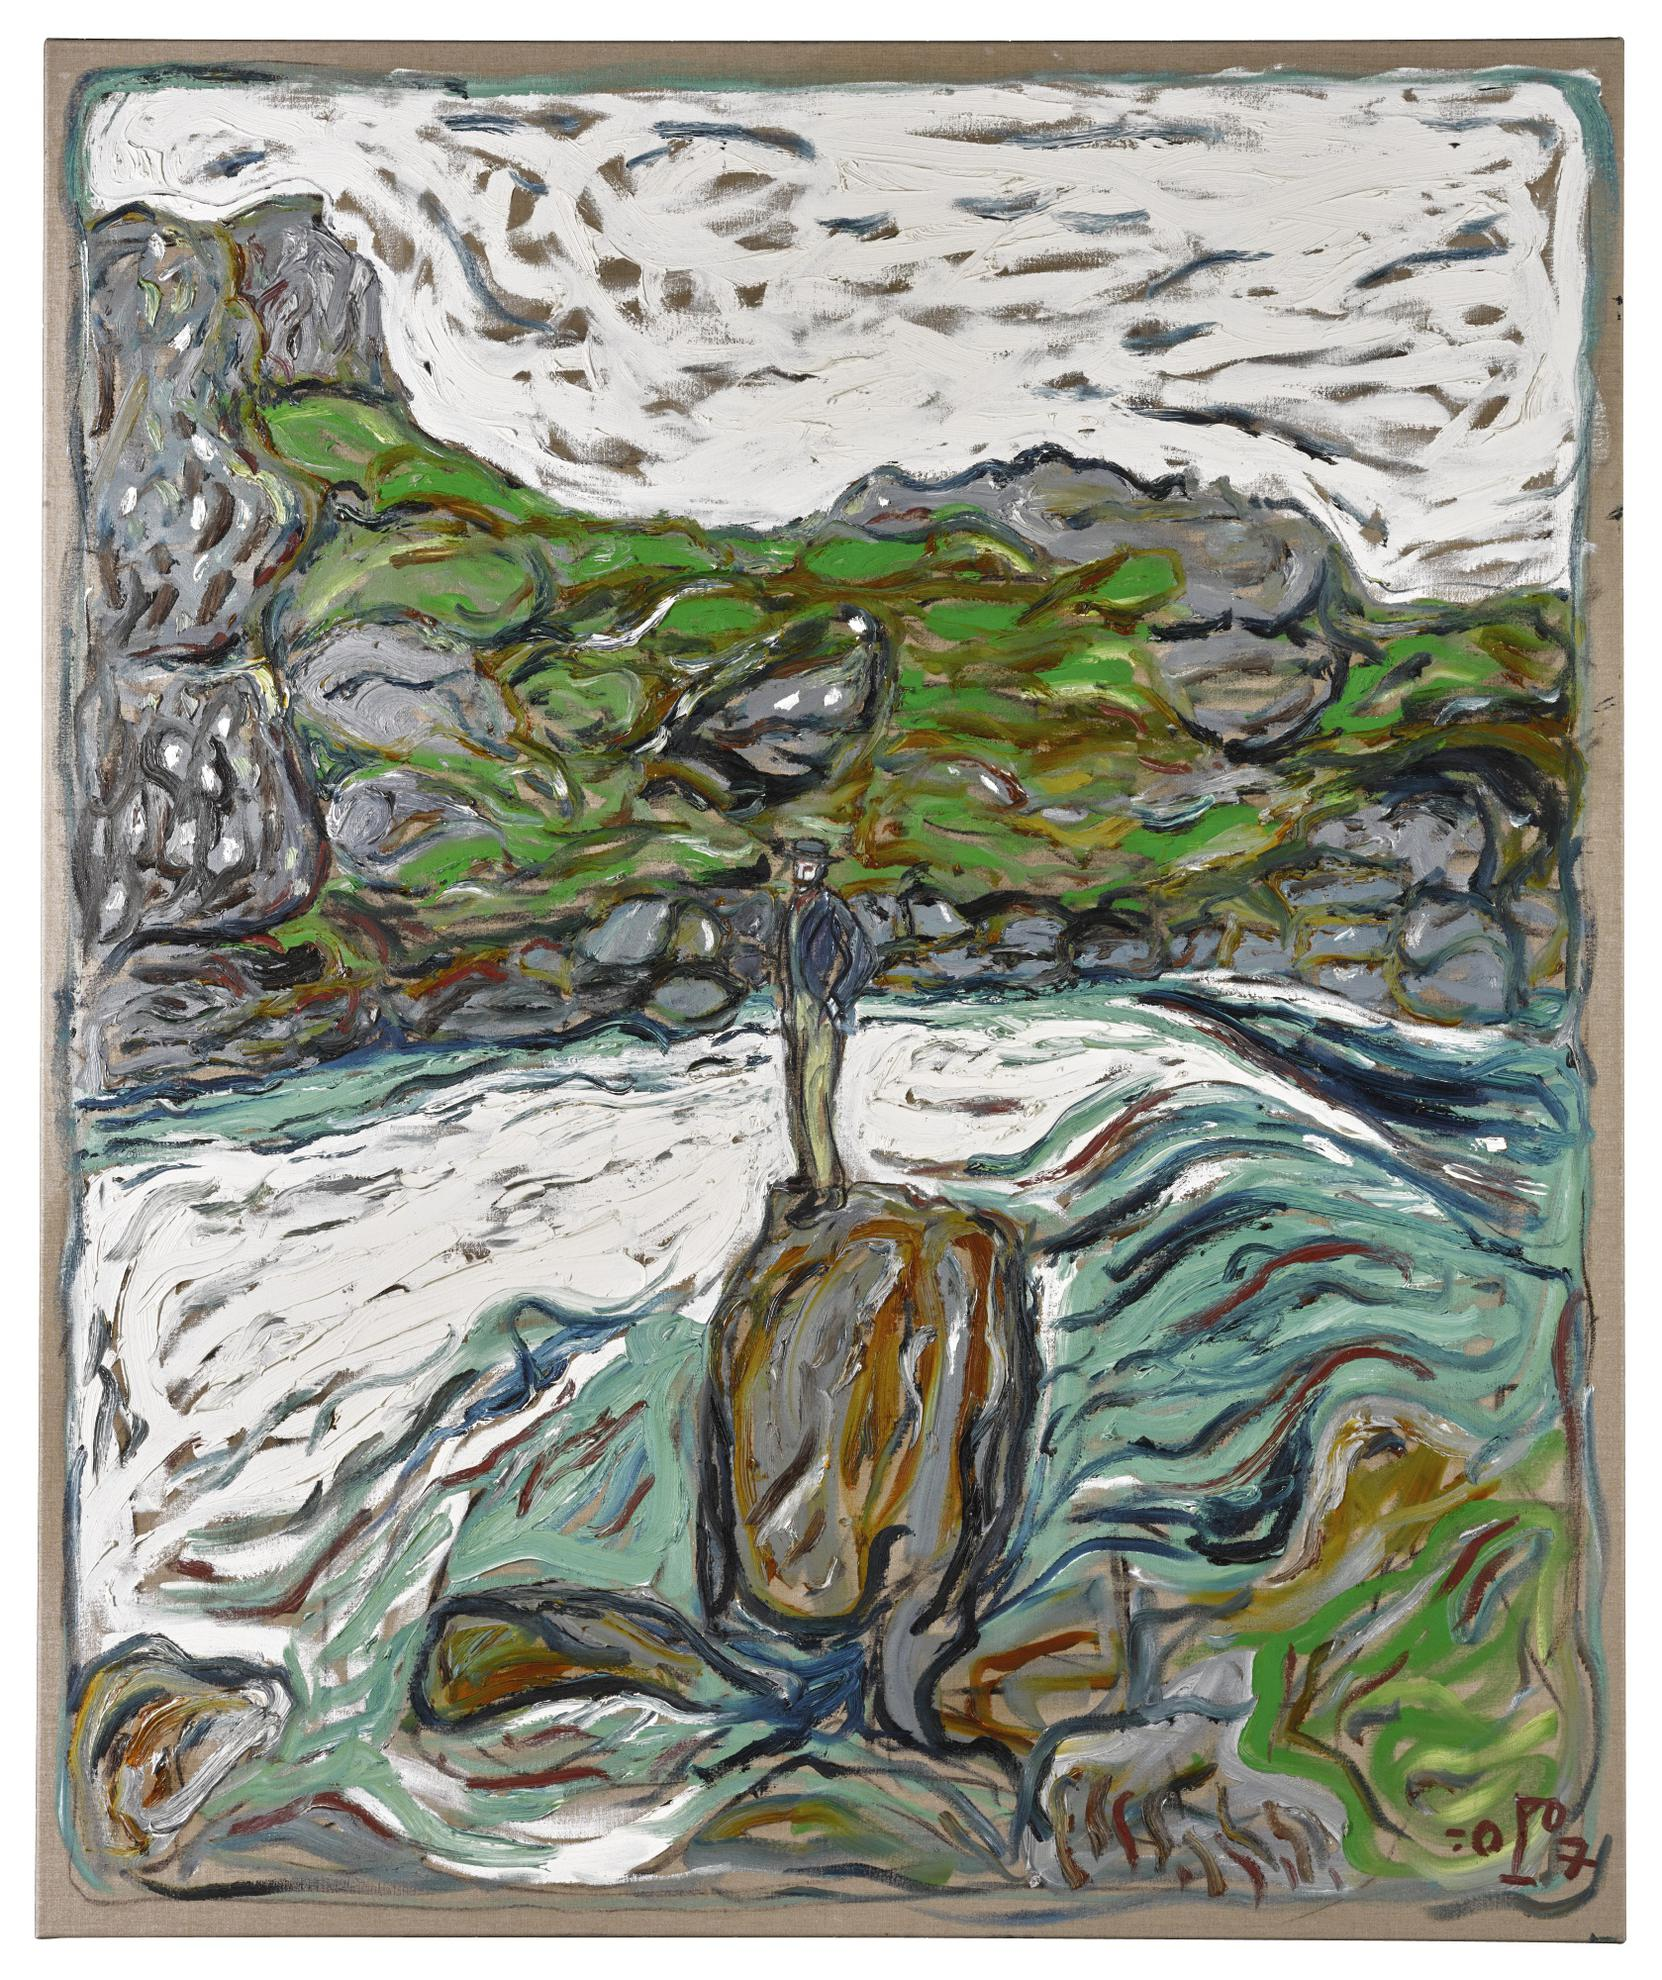 Billy Childish-Man On Rock, River Althing, Iceland-